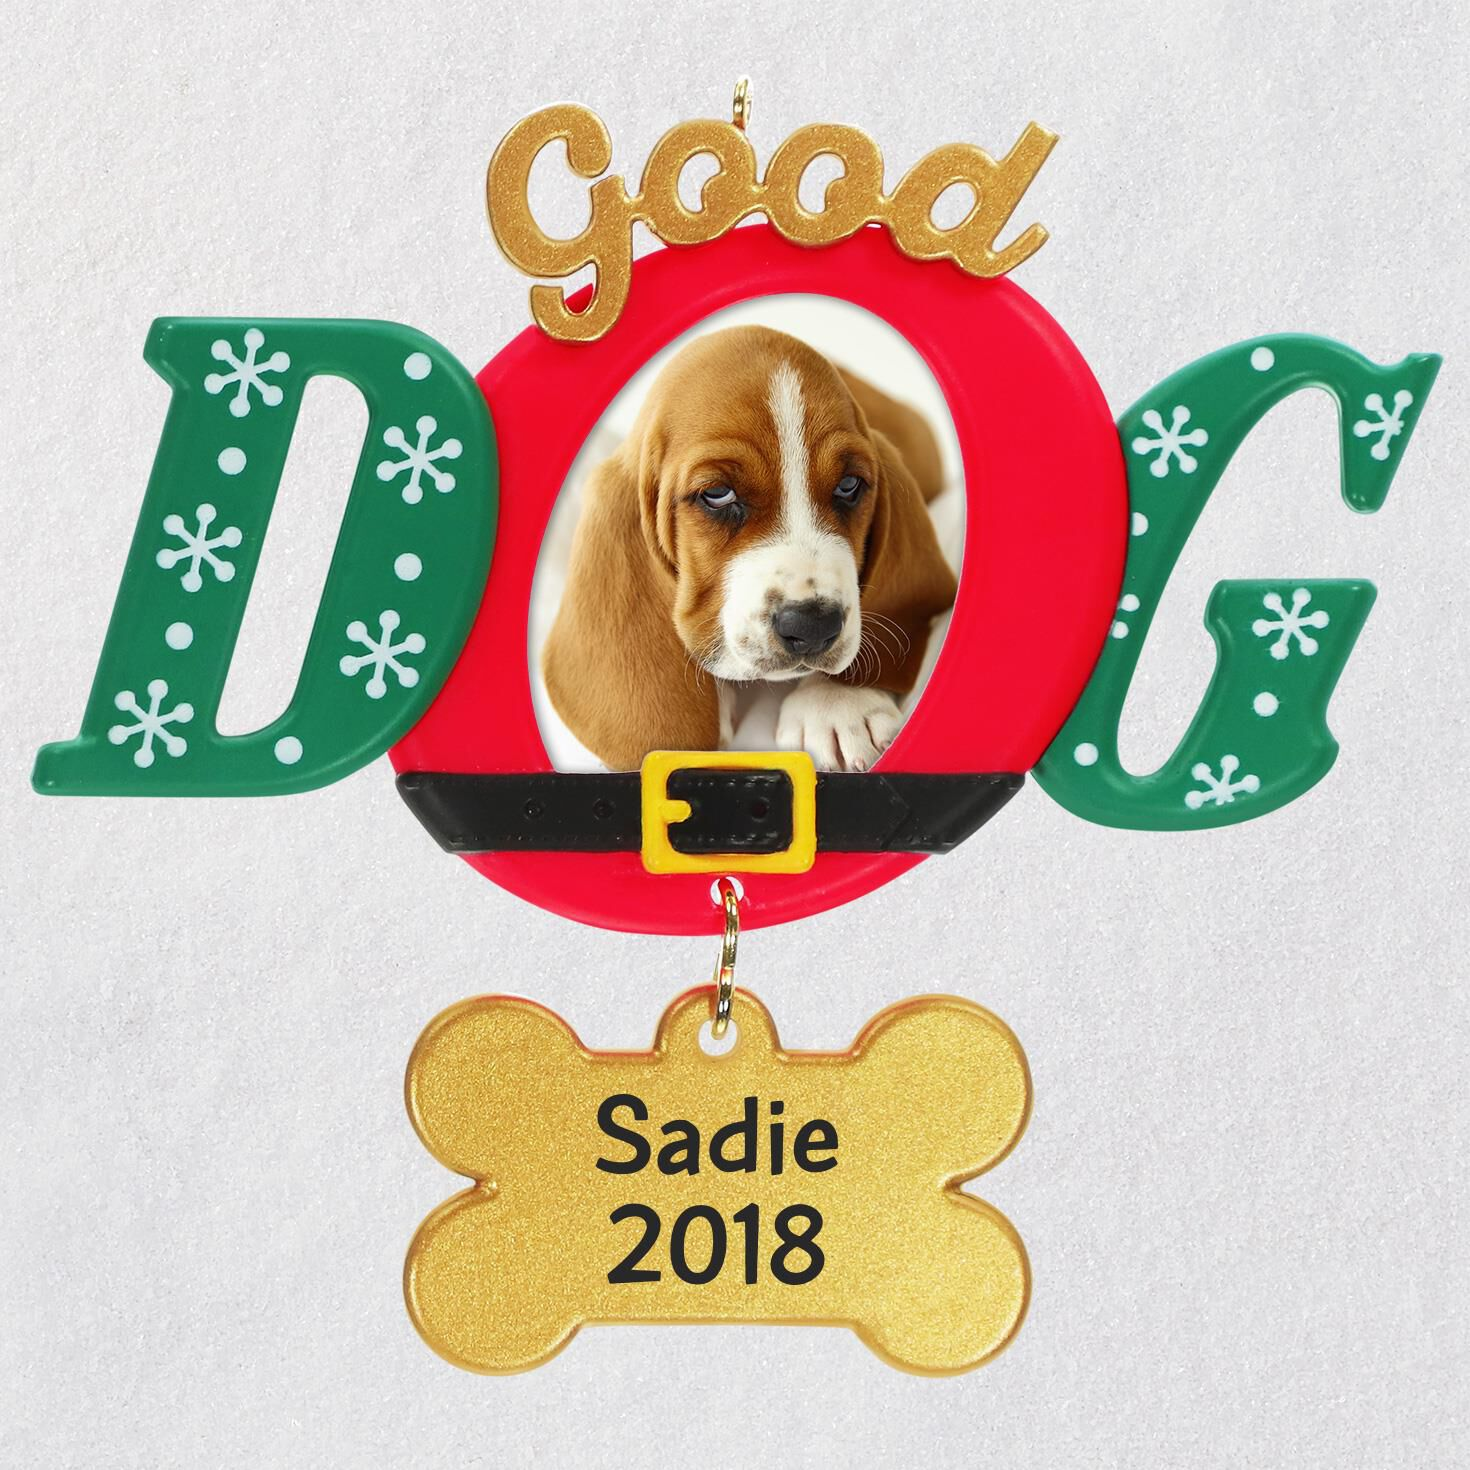 Good Dog Photo Frame Personalized Ornament - Personalized Ornaments ...